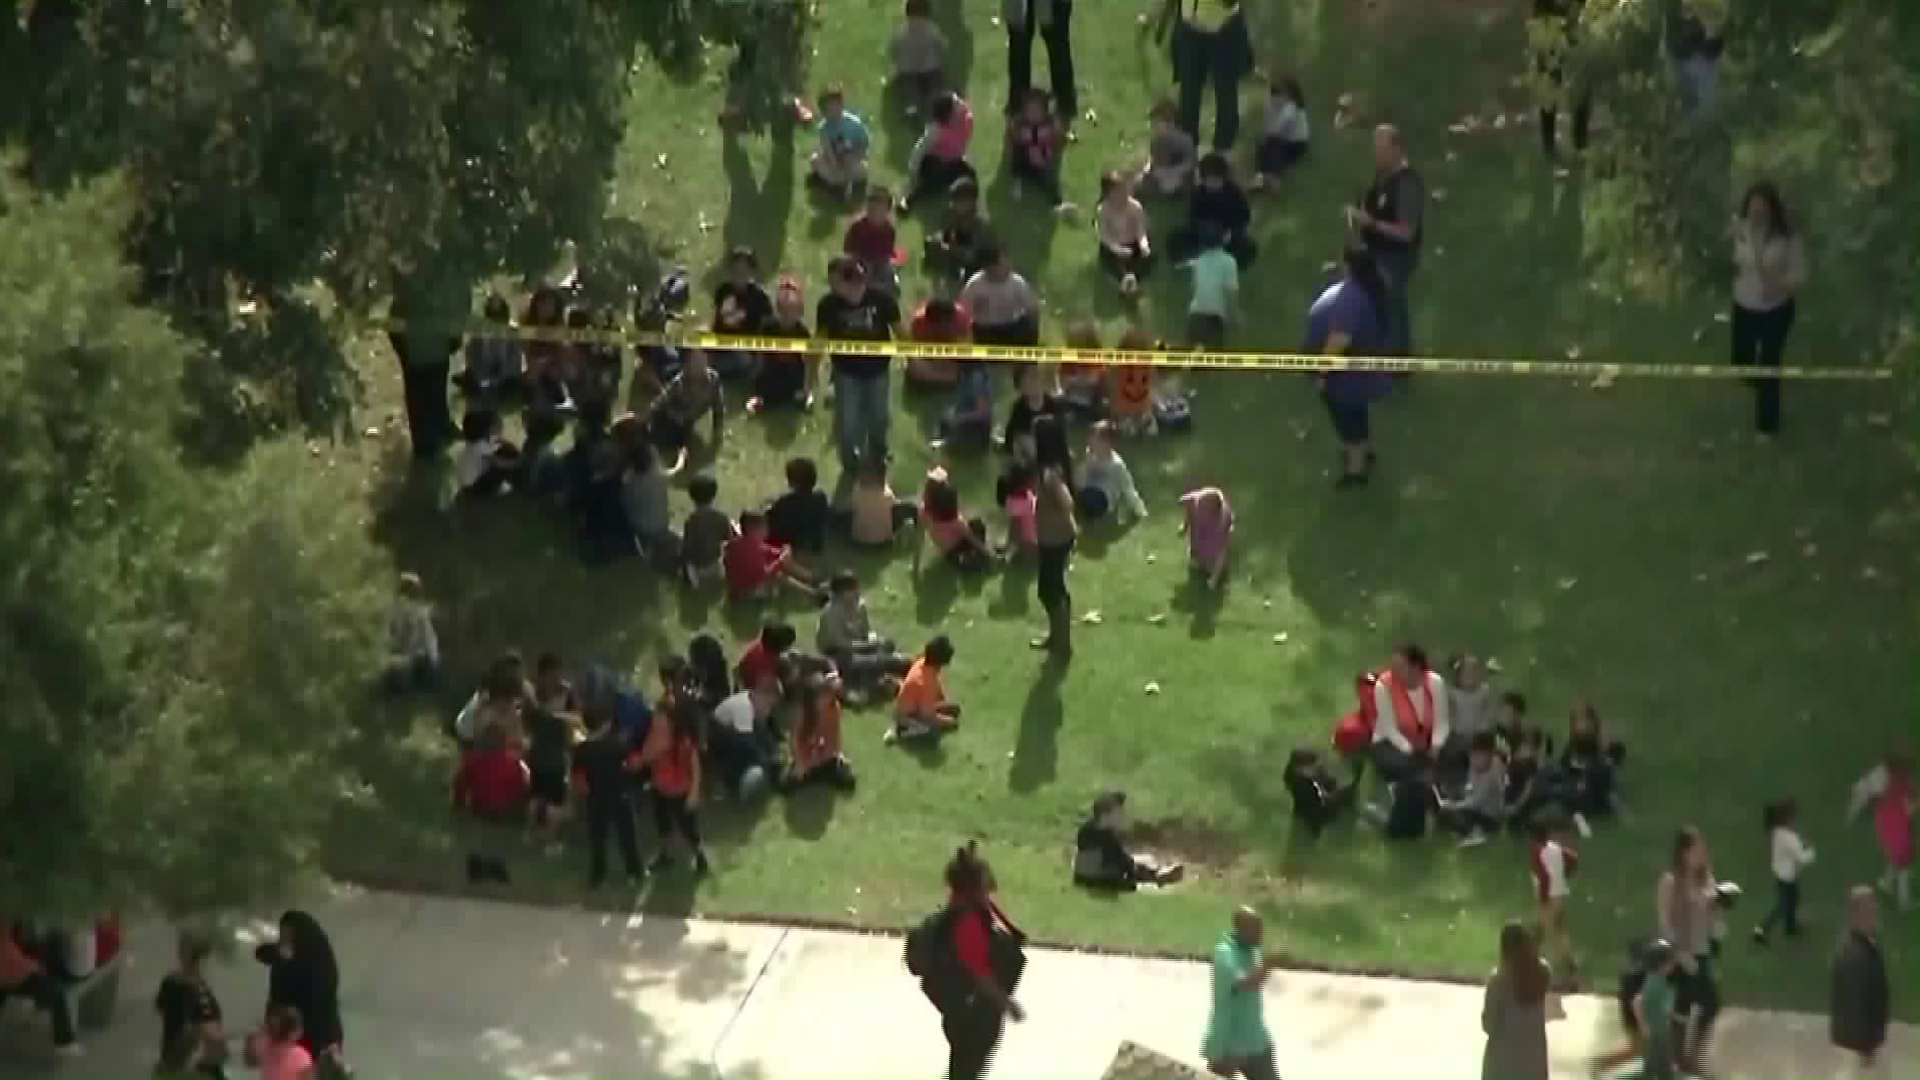 Students at Castleview Elementary School are evacuated after one of their teachers was taken hostage in a classroom on Oct. 31, 2017. (Credit: KTLA)